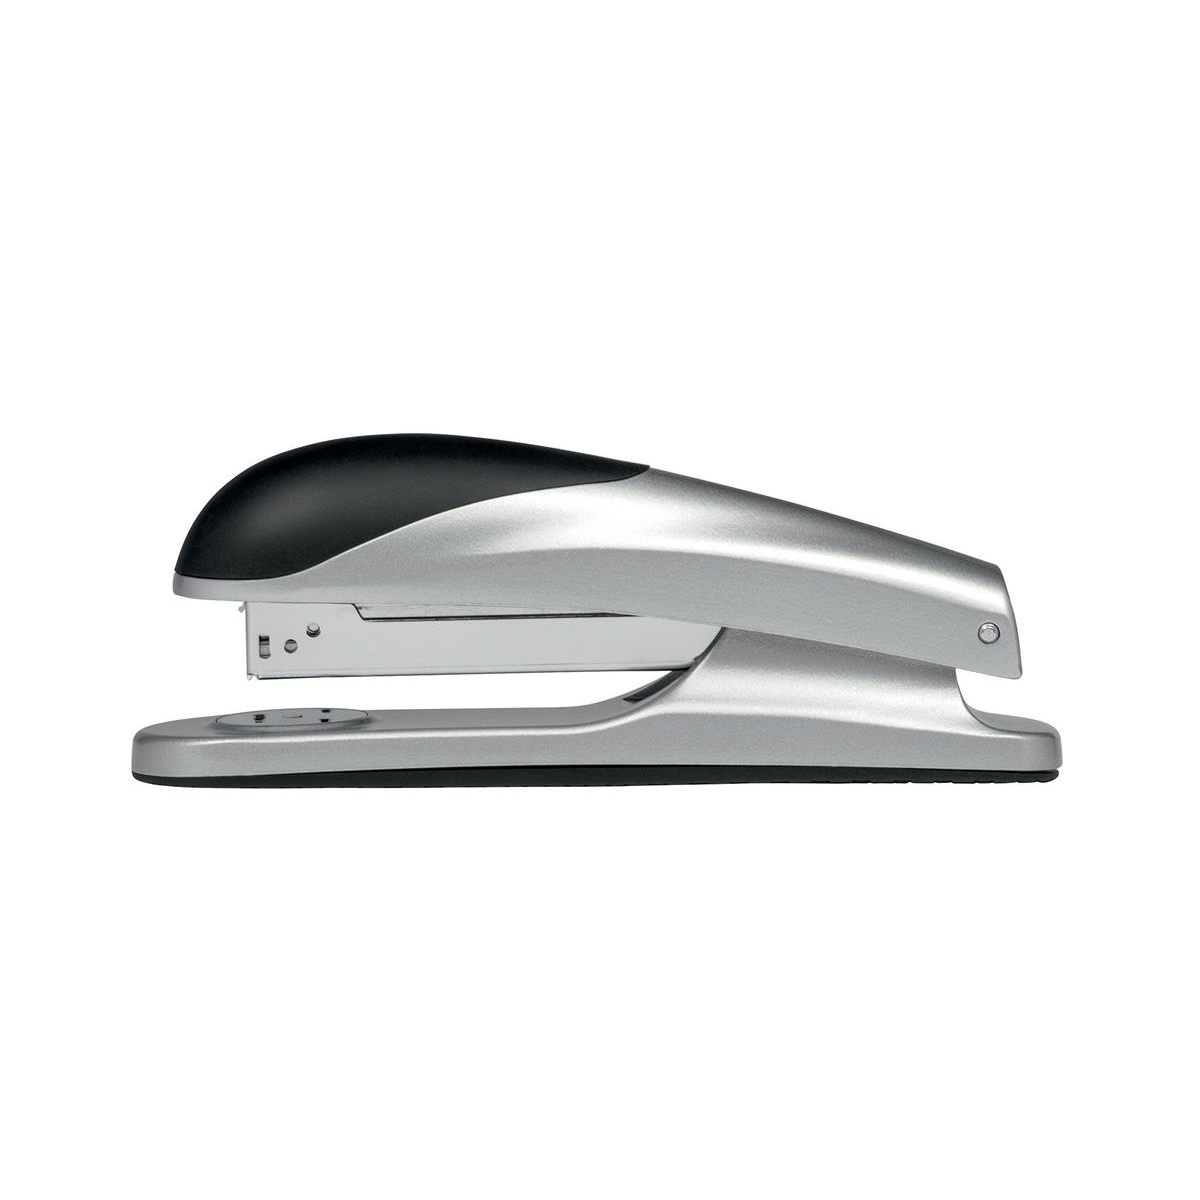 Long Arm Staplers 5 Star Elite Stapler Full Strip Capacity 20 Sheets Silver